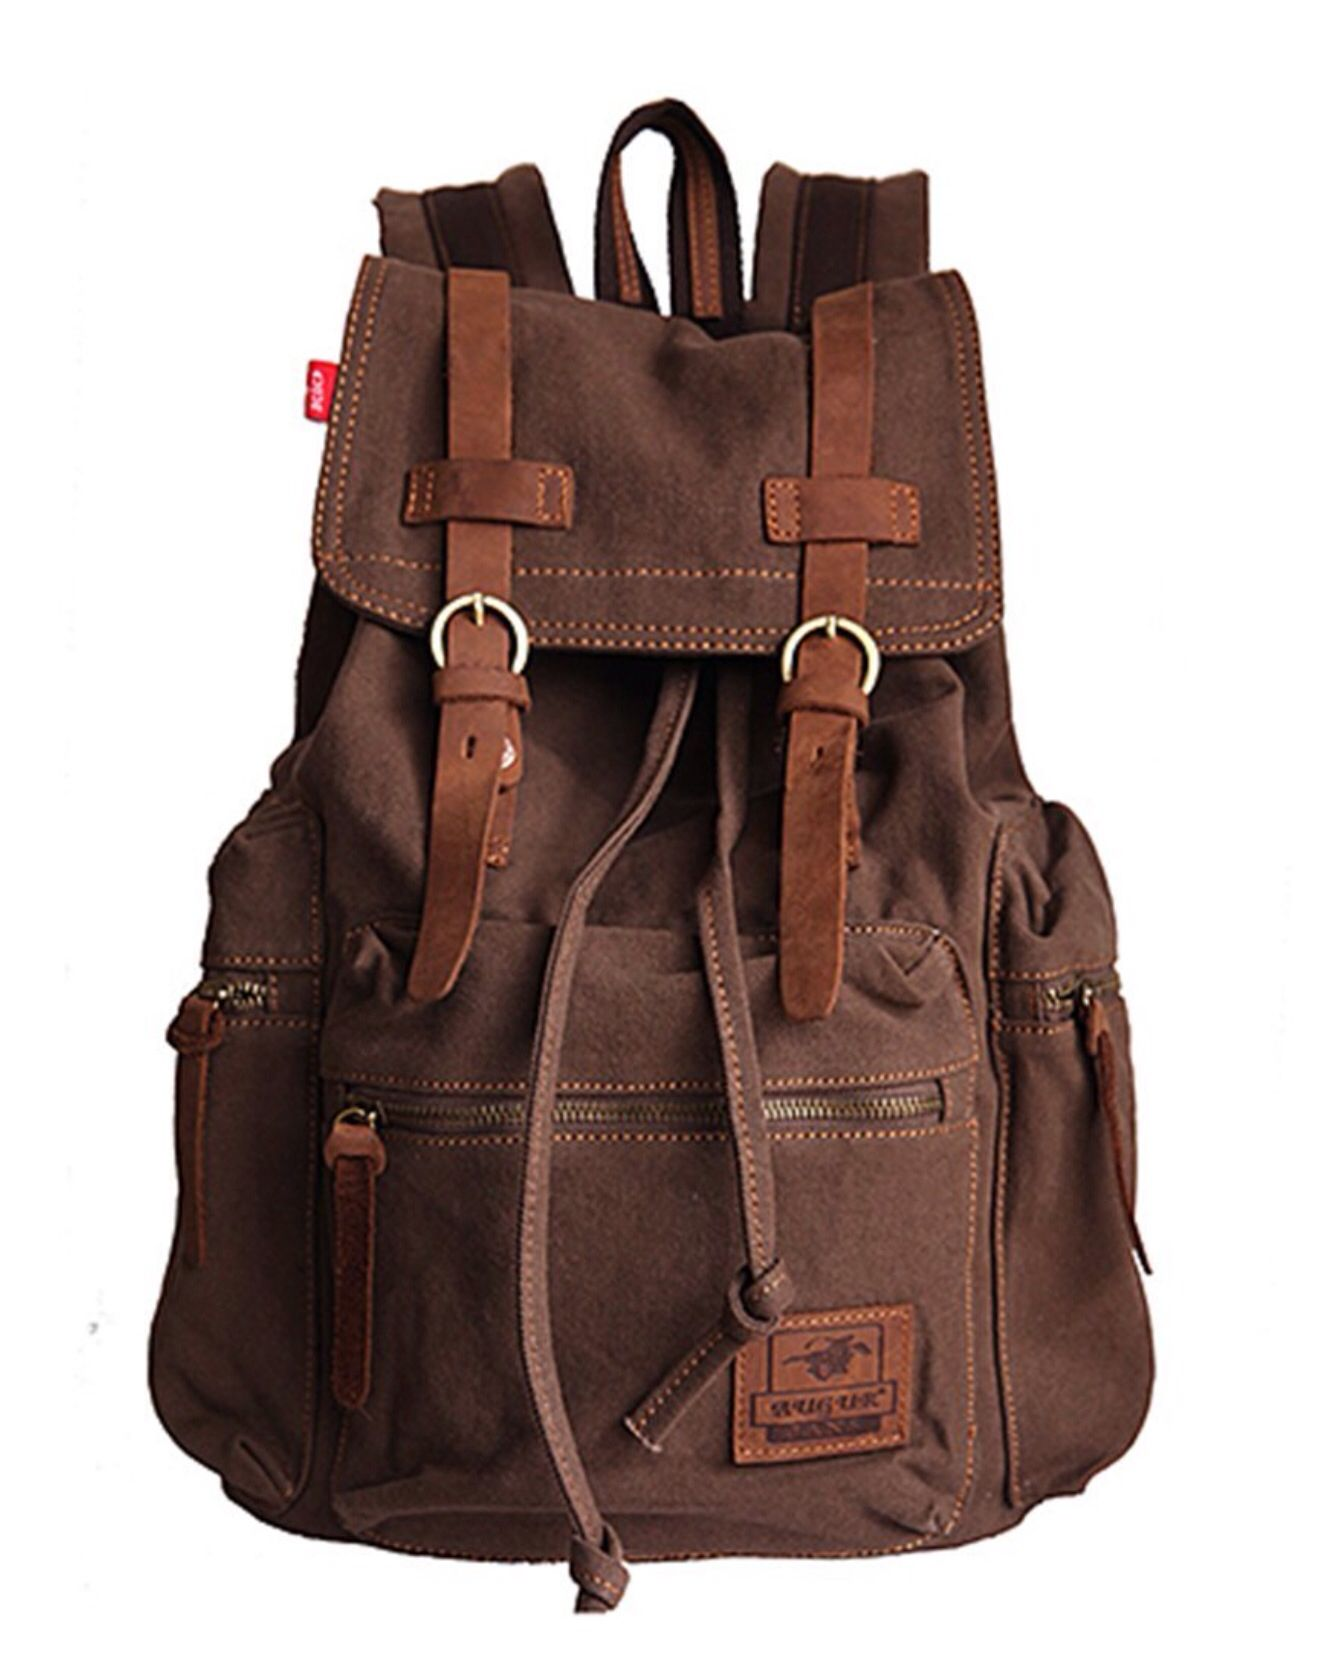 6525fb04ca Unisex brown coffee canvas bag - Available from amazon